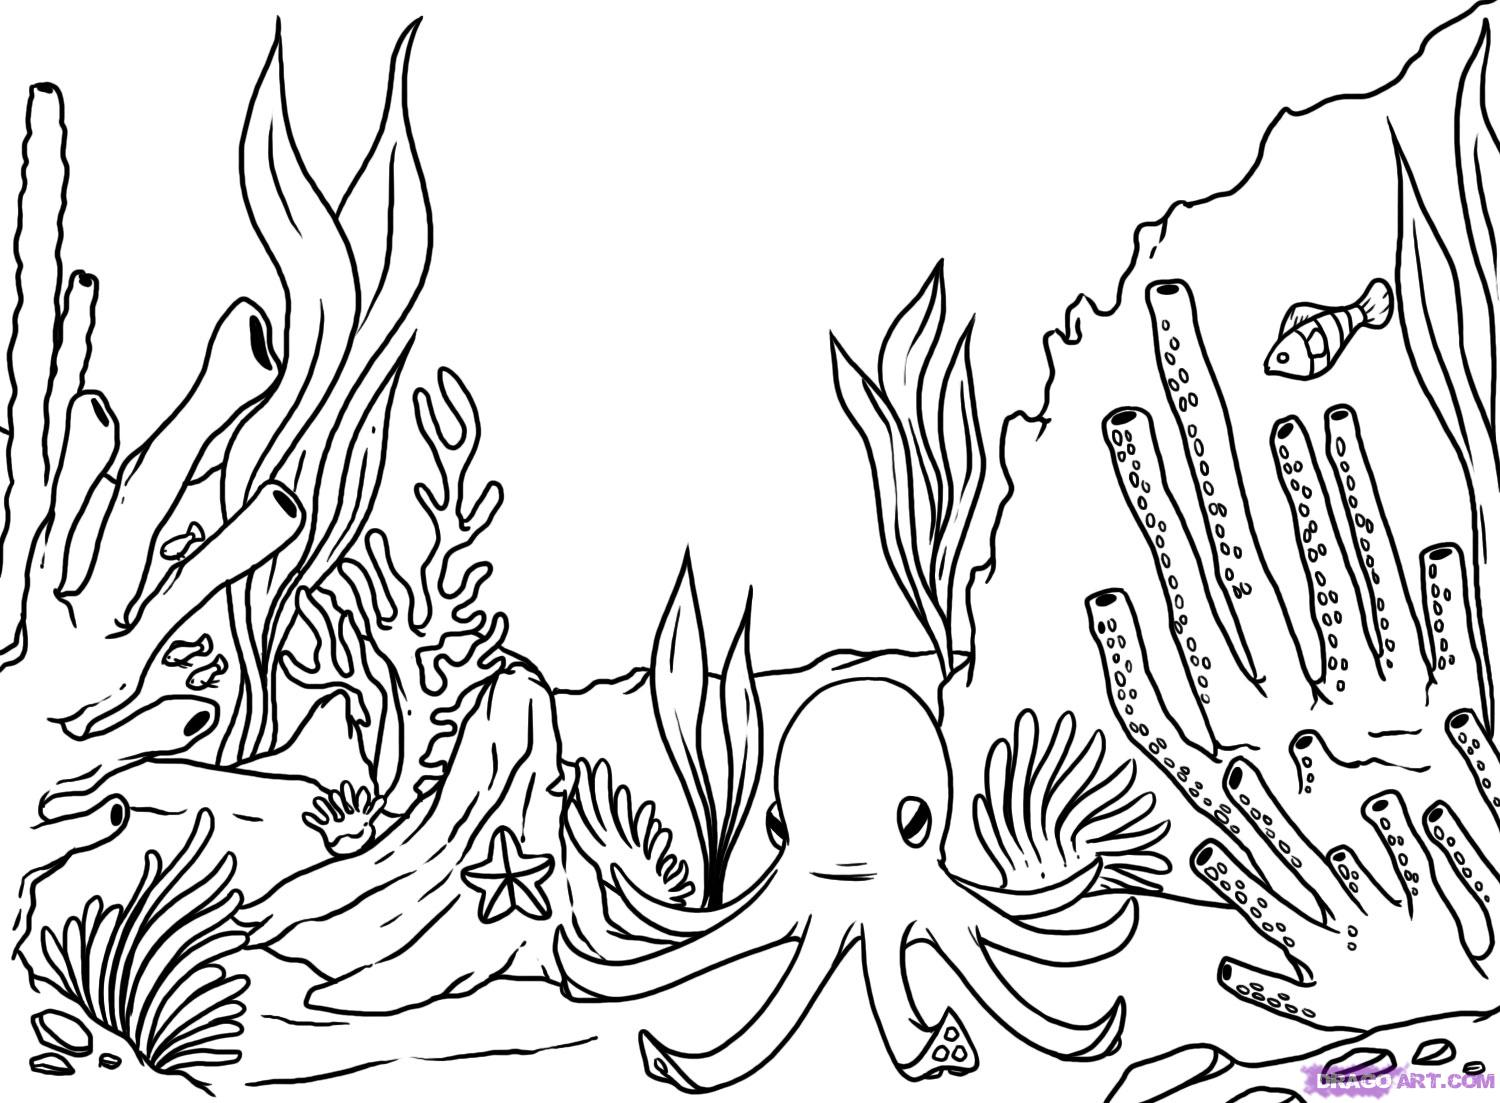 Coral coloring #16, Download drawings